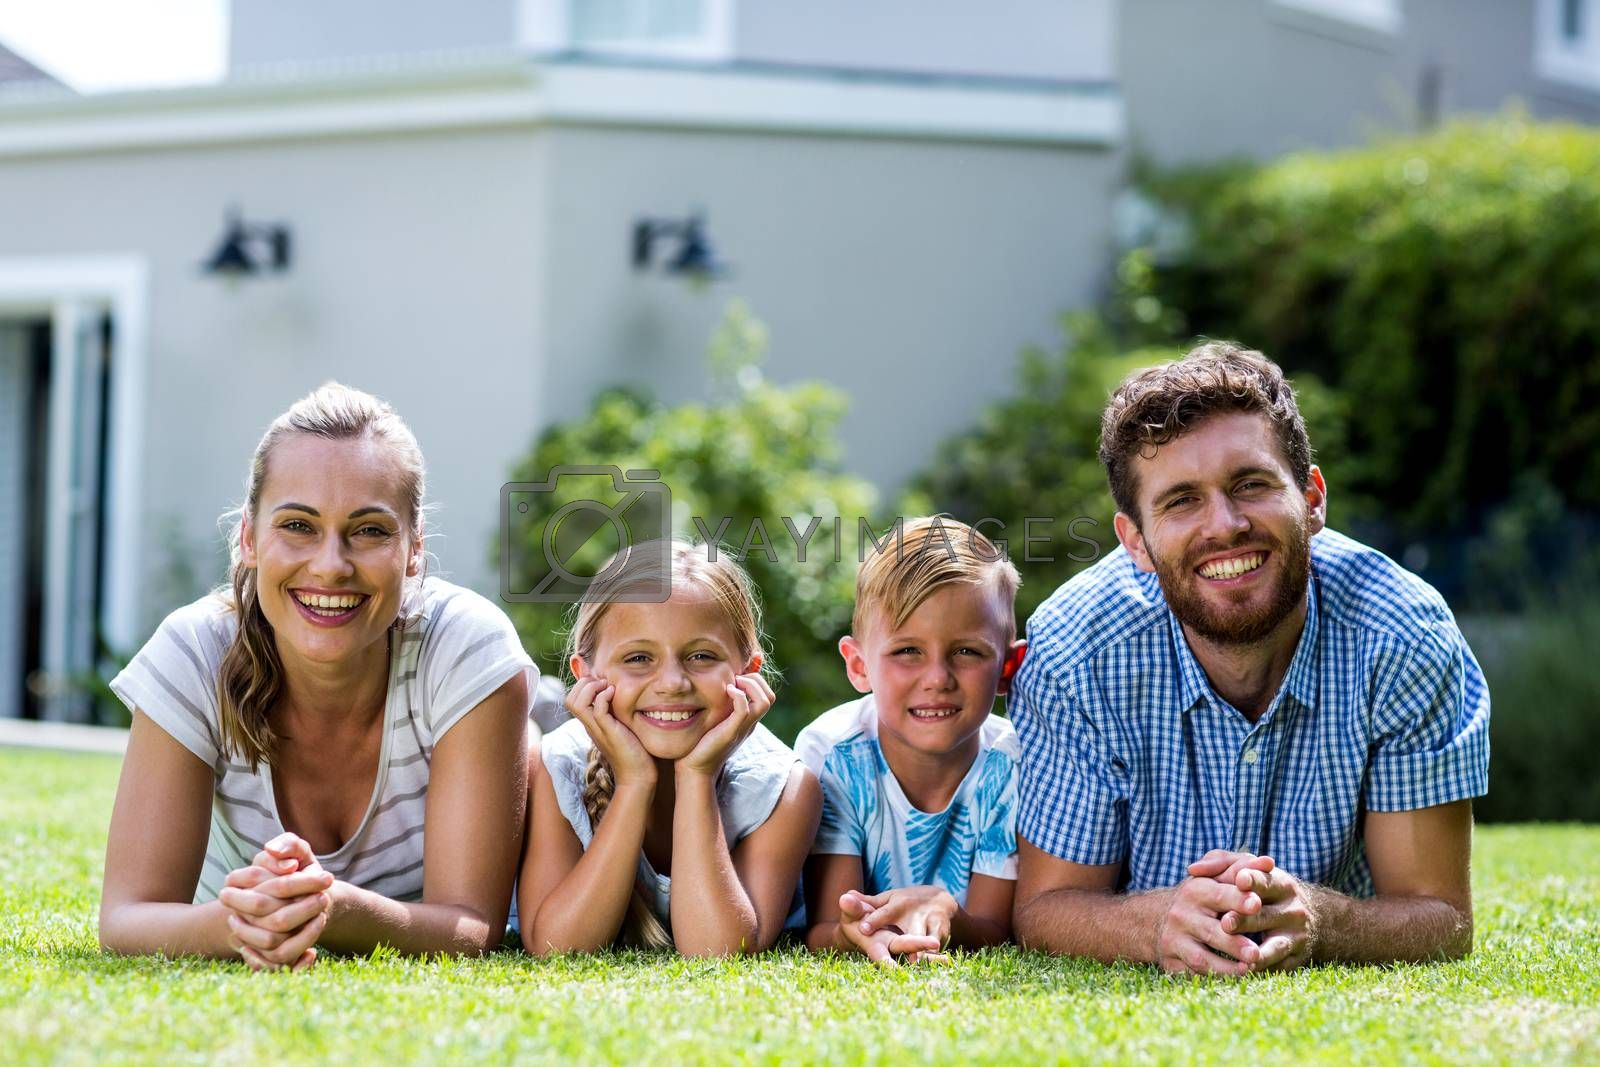 Front view of happy family lying in yard  by Wavebreakmedia